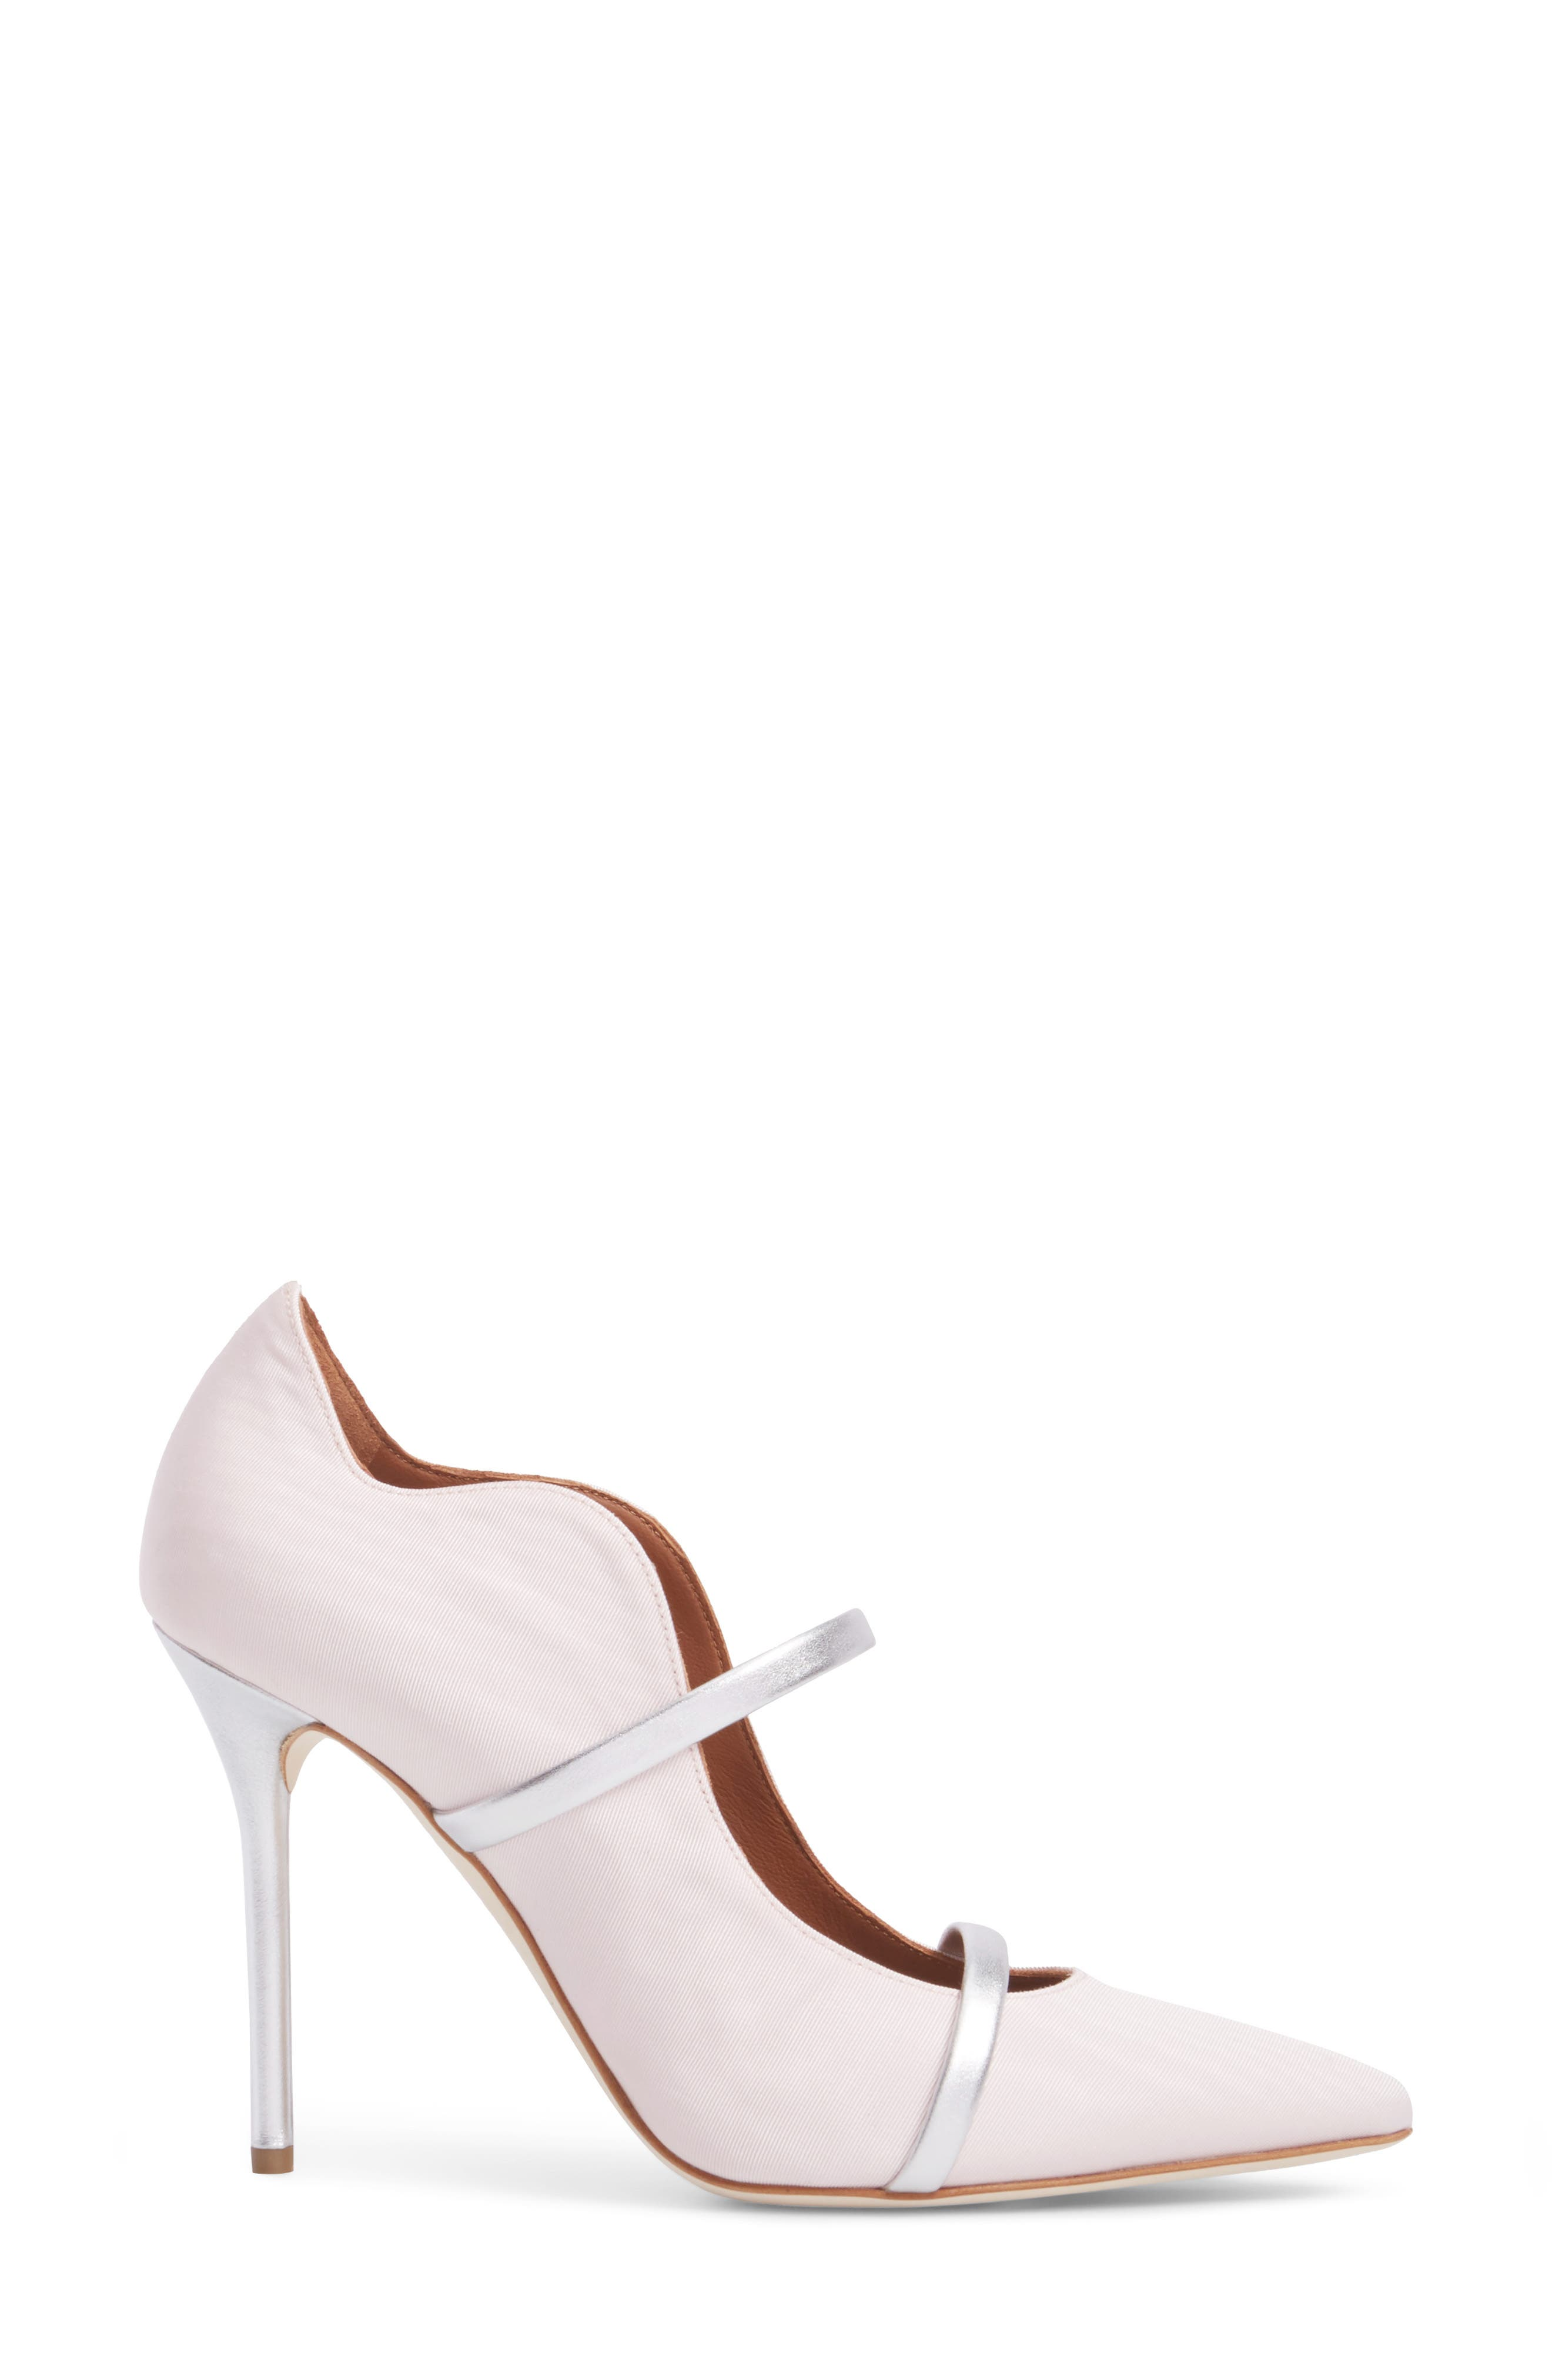 Maureen Double Band Pump,                             Alternate thumbnail 3, color,                             Rose/ Silver